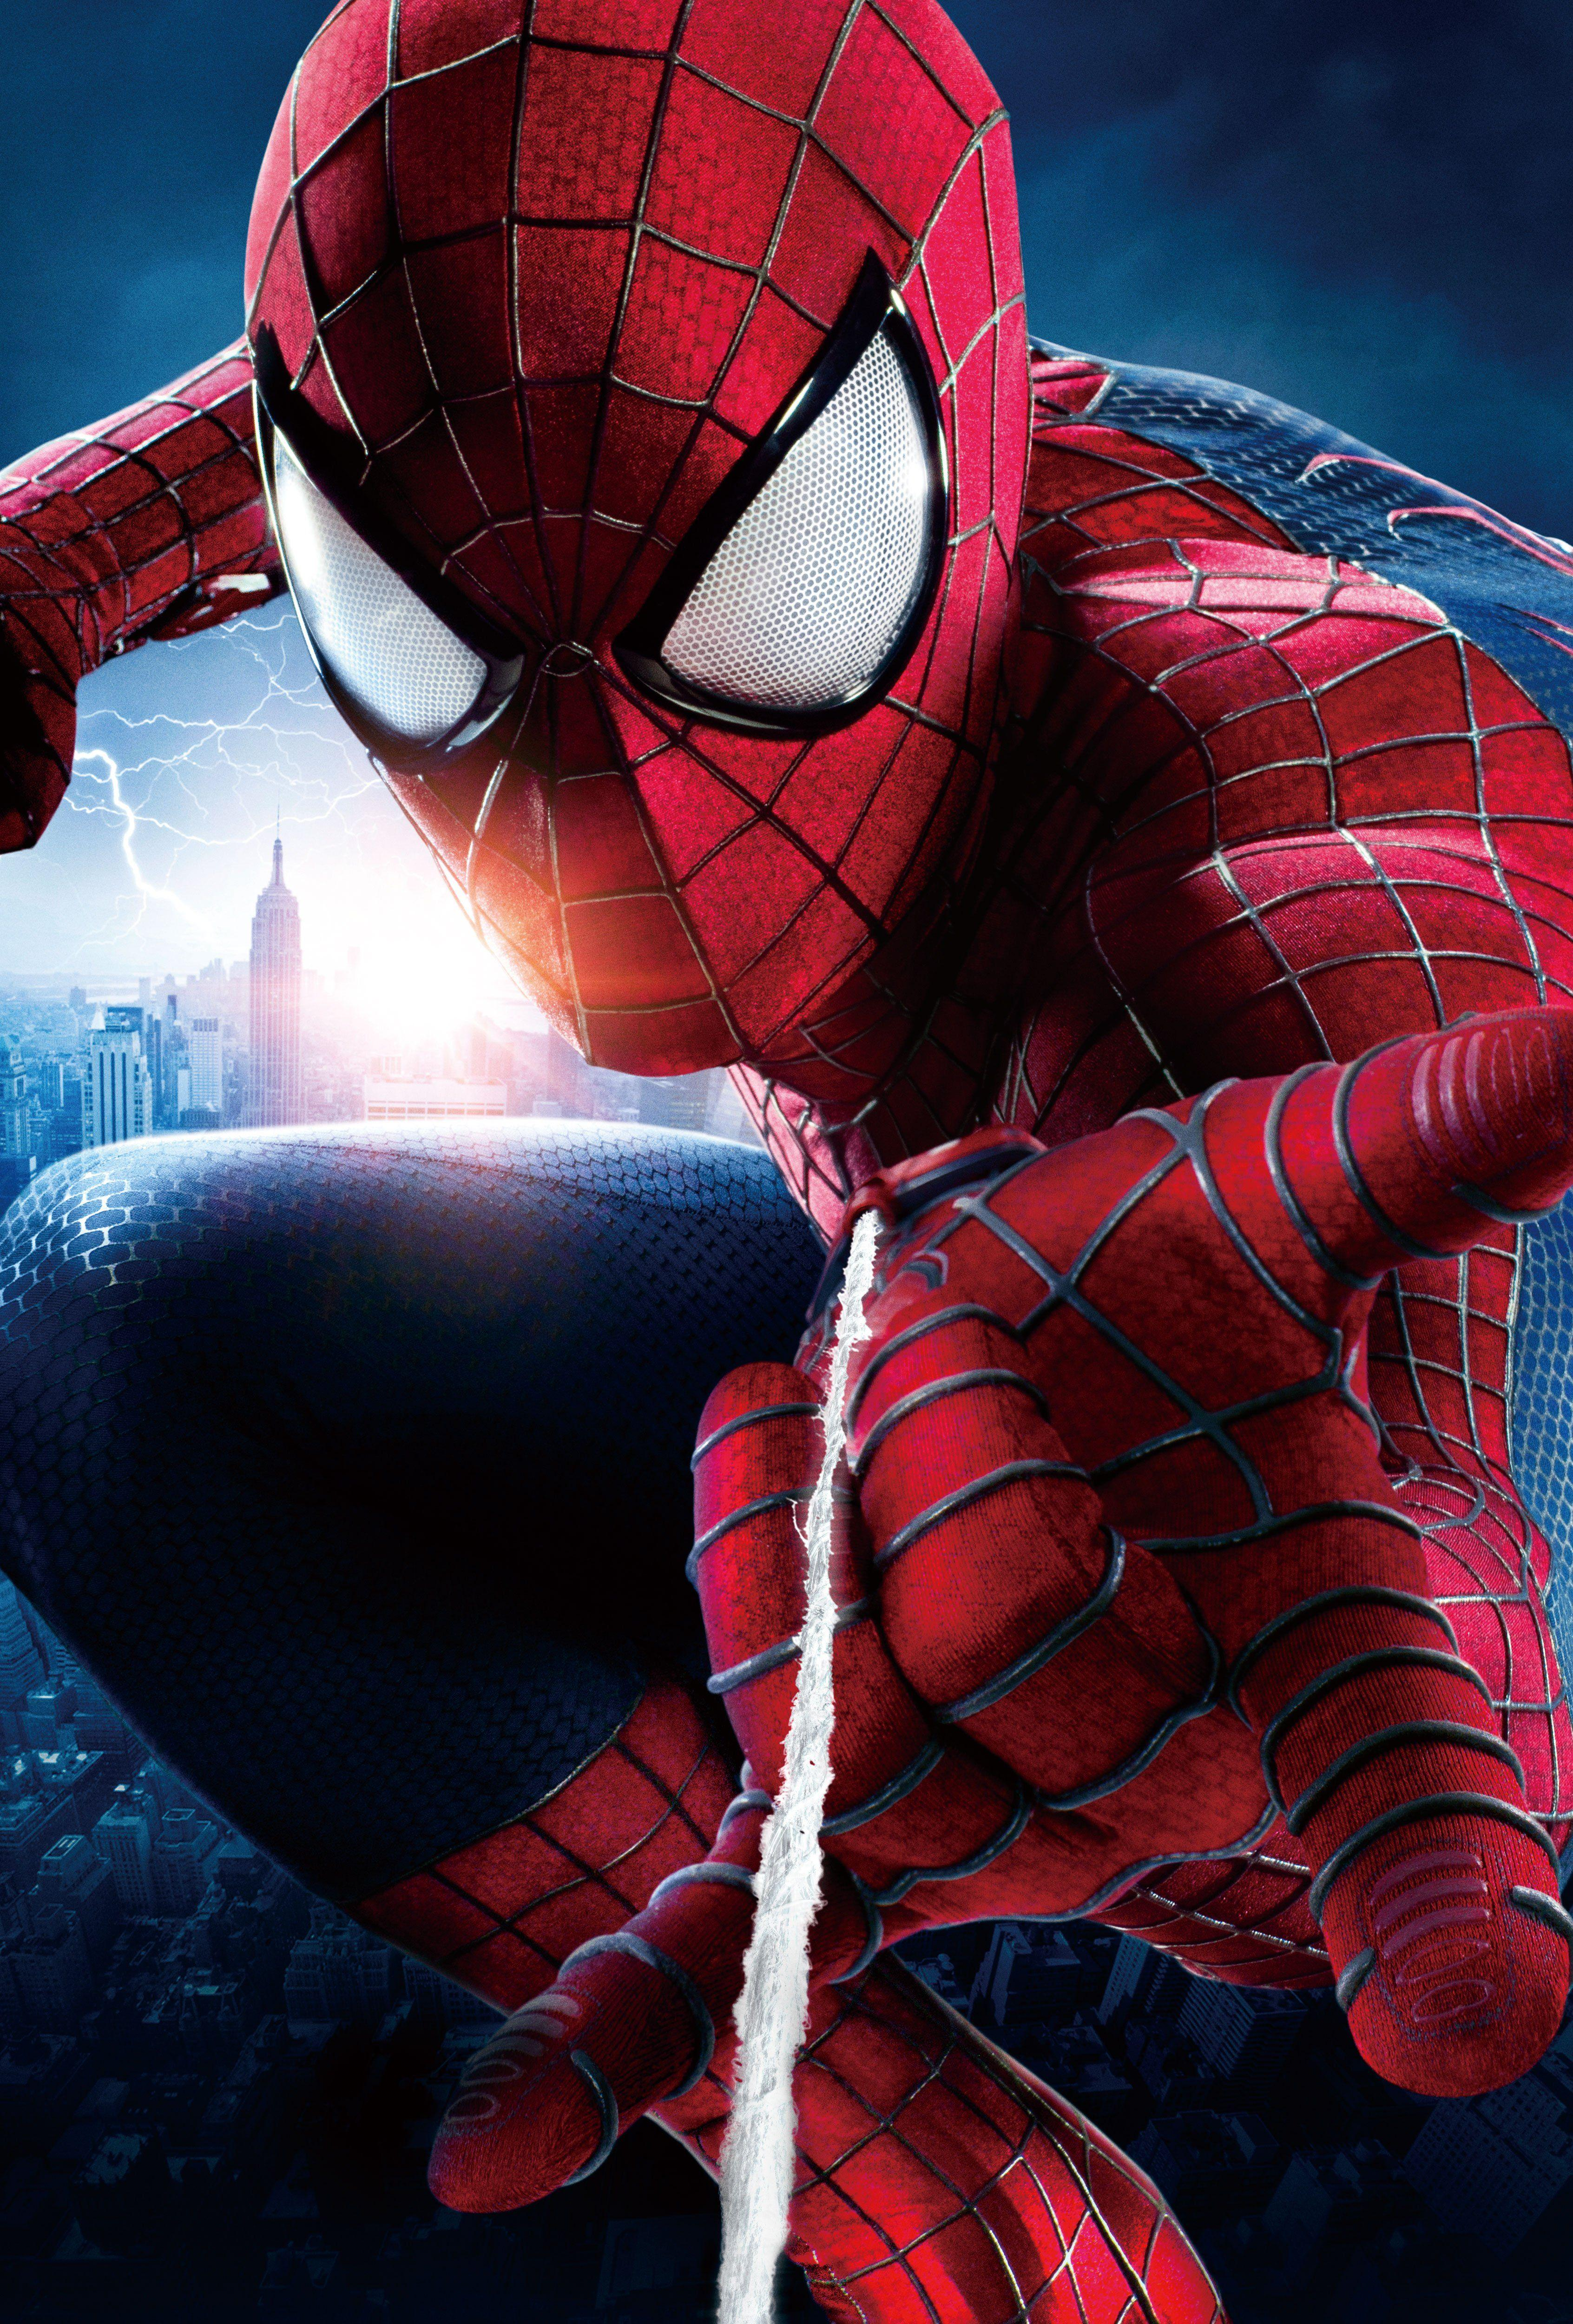 Marvel's Spider-Man Wallpapers - Wallpaper Cave